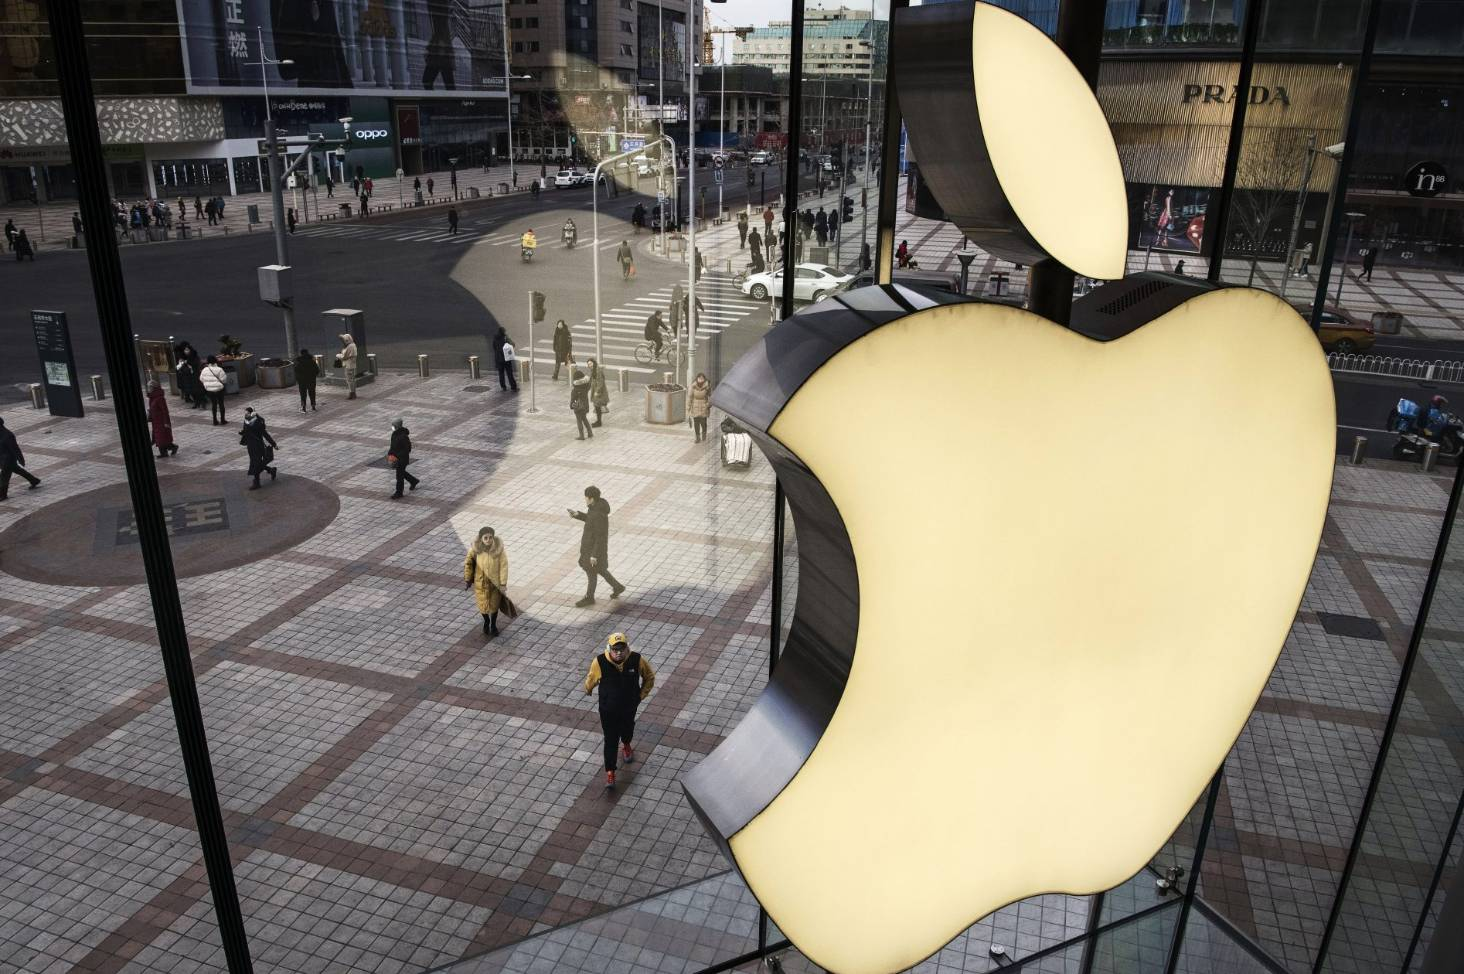 Supreme Court rules against Apple, allowing lawsuit